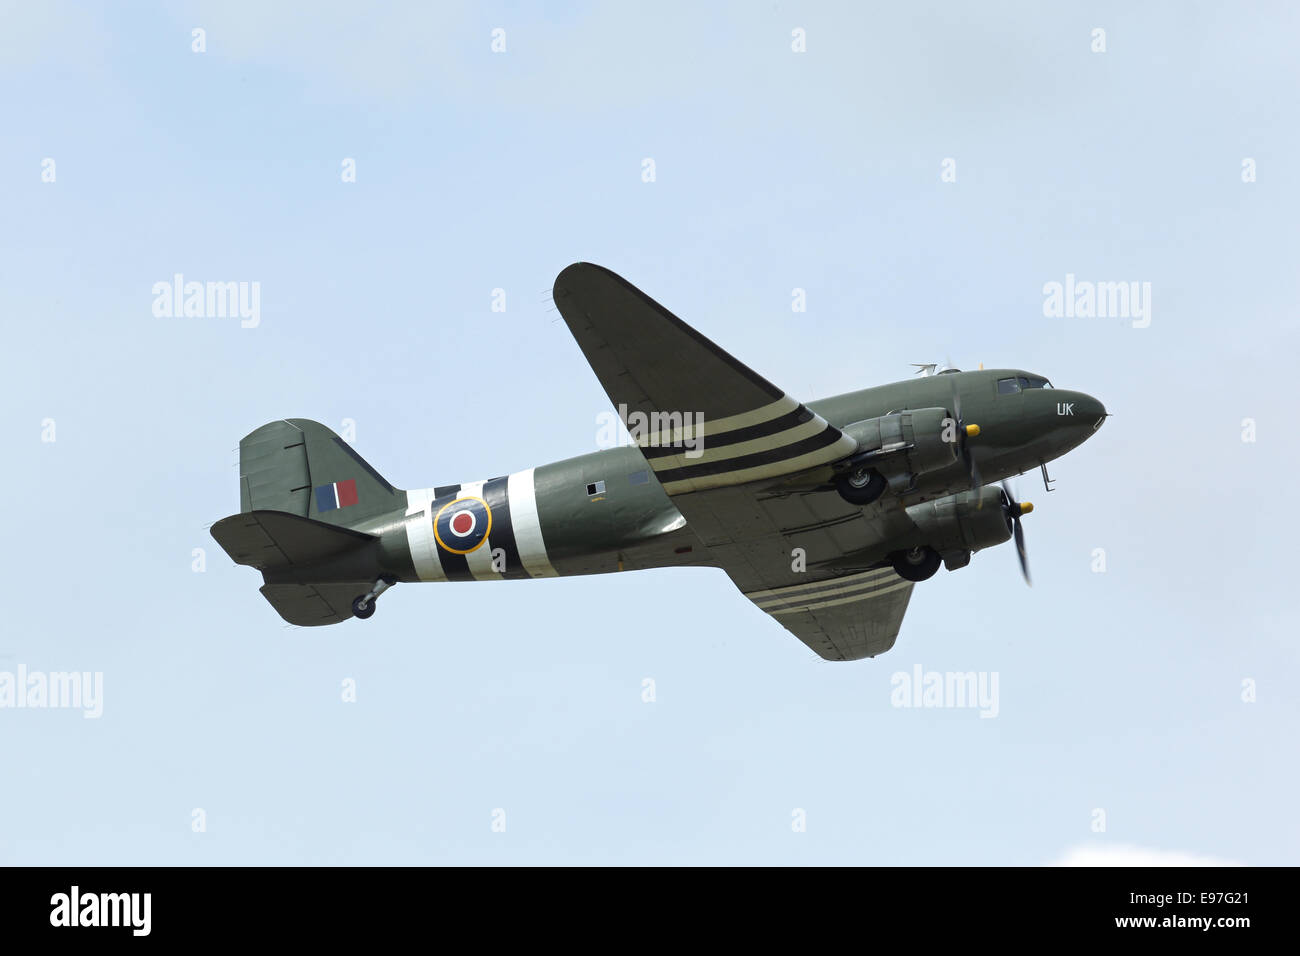 Douglas Dakota C3 displays during Royal International Air Tattoo 2014 - Stock Image